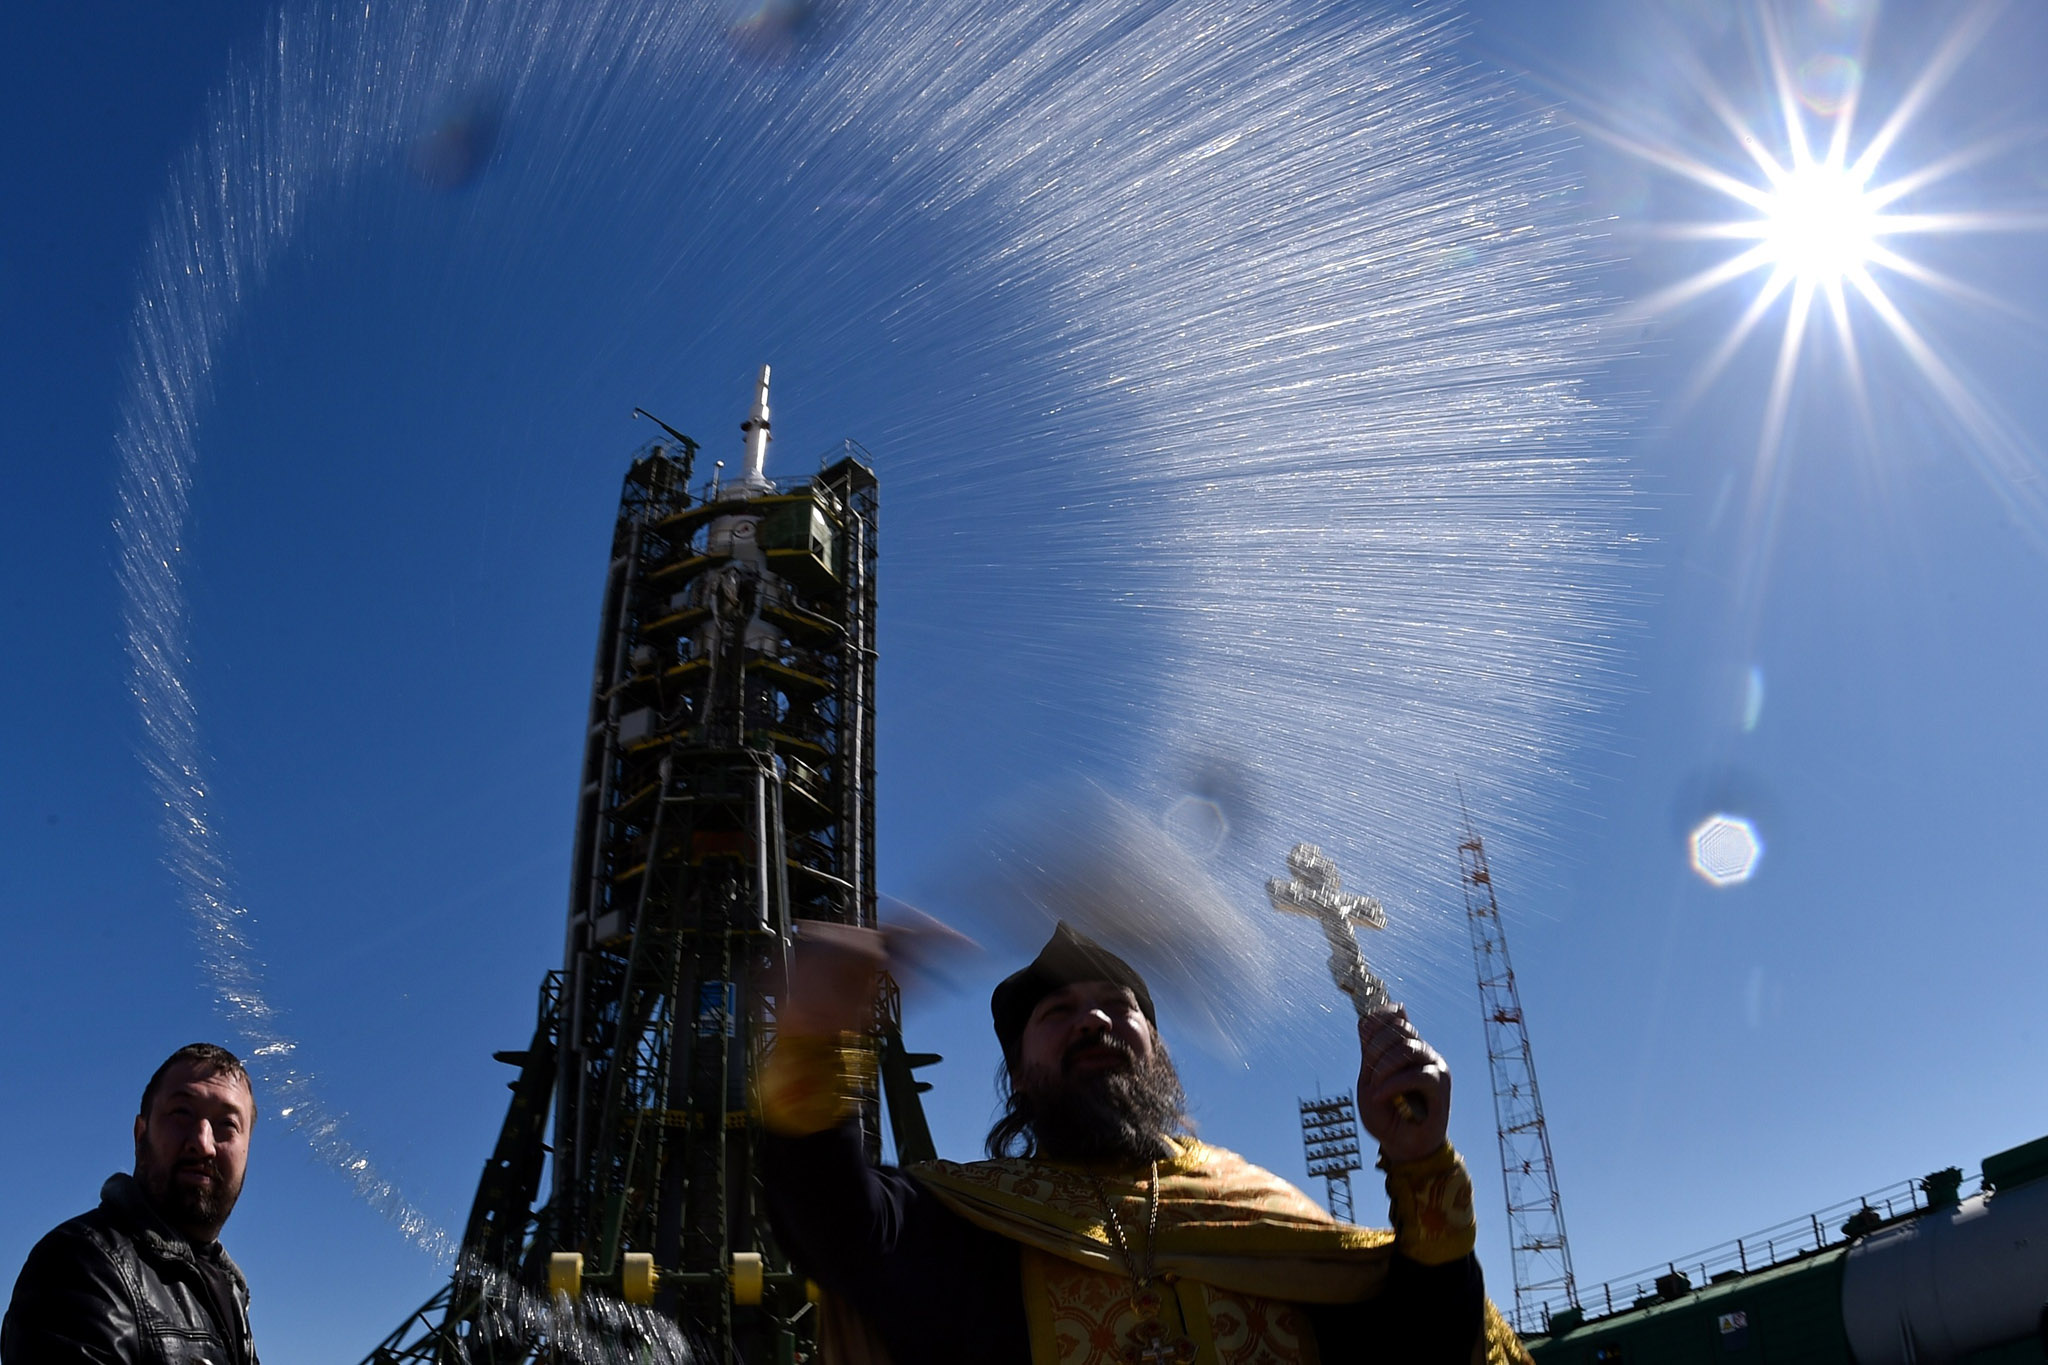 A Russian Orthodox priest blesses the So...A Russian Orthodox priest blesses the Soyuz TMA-16M spacecraft at the launch pad of the Russian-leased Baikonur cosmodrome on March 26, 2015. Russia's Soyuz TMA-16M spacecraft carrying the International Space Station (ISS) crew of US astronaut Scott Kelly and Russian cosmonauts Gennady Padalka and Mikhail Kornienko is scheduled to blast off to the ISS from Baikonur early on March 28, Kazakh time. AFP PHOTO / KIRILL KUDRYAVTSEVKIRILL KUDRYAVTSEV/AFP/Getty Images